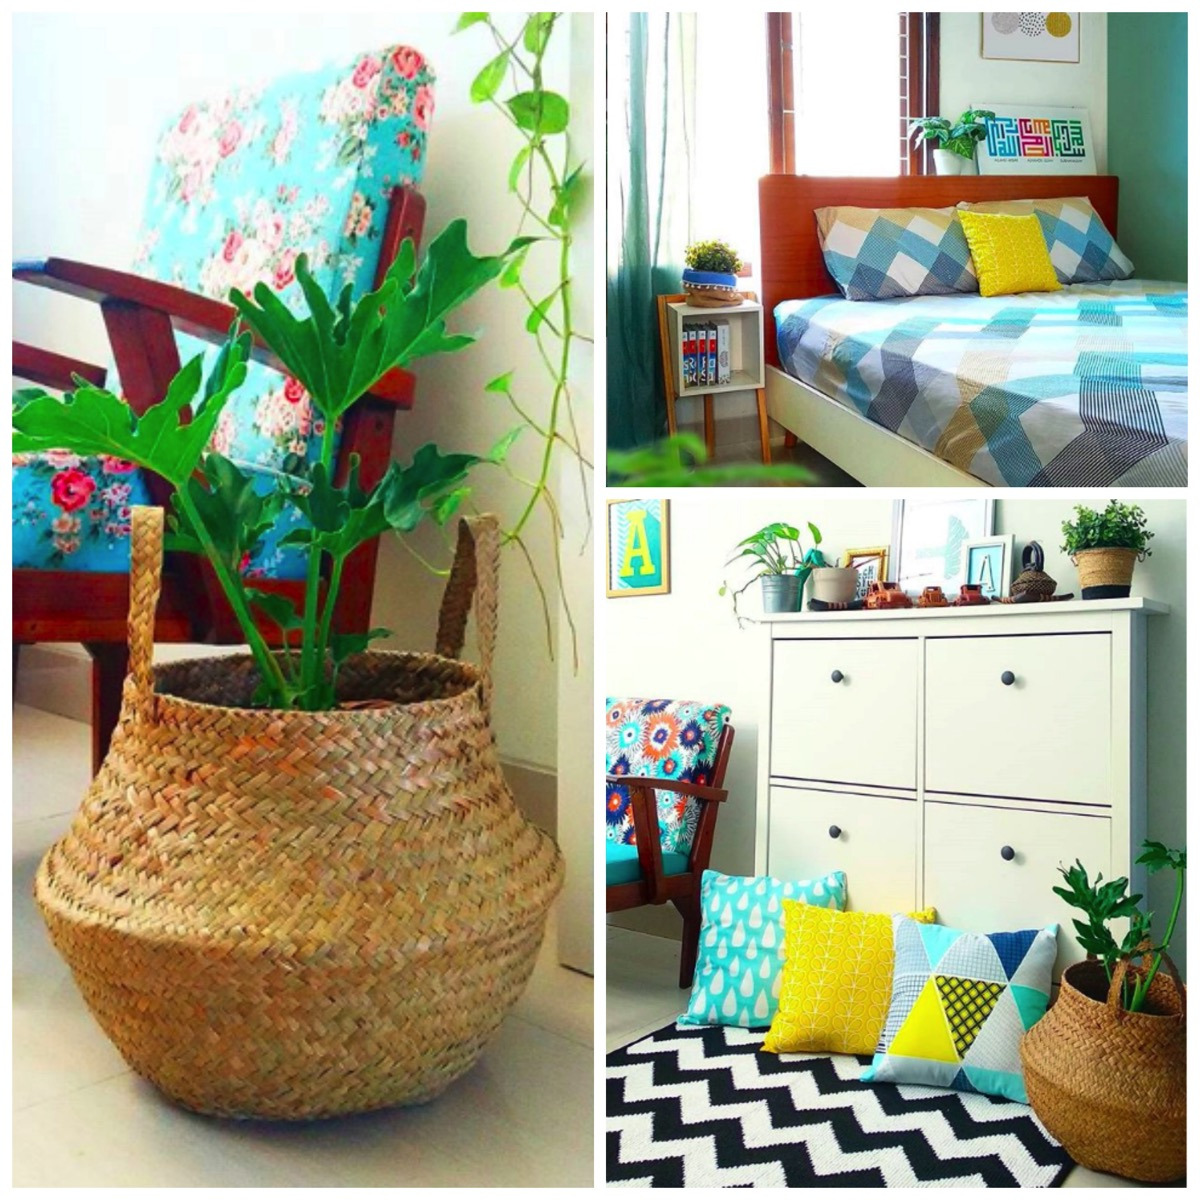 Colorful home with patterns and textures home with plants dig and hang